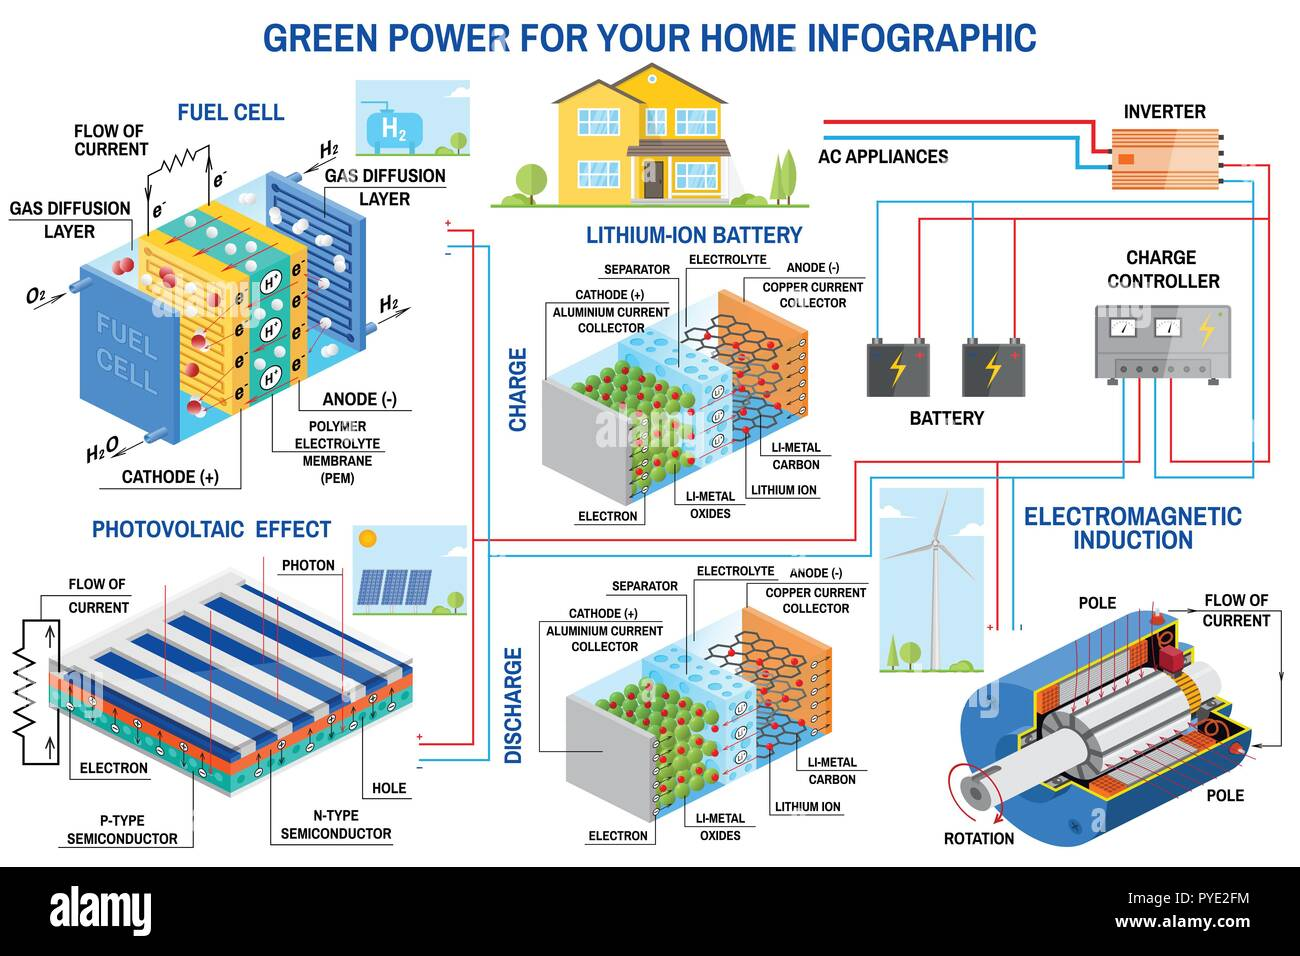 Solar panel, fuel cell and wind power generation system for home infographic. Wind turbine, solar panel, battery, charge controller and inverter. Vector. Lithium is the Fuel of the Green - Stock Vector